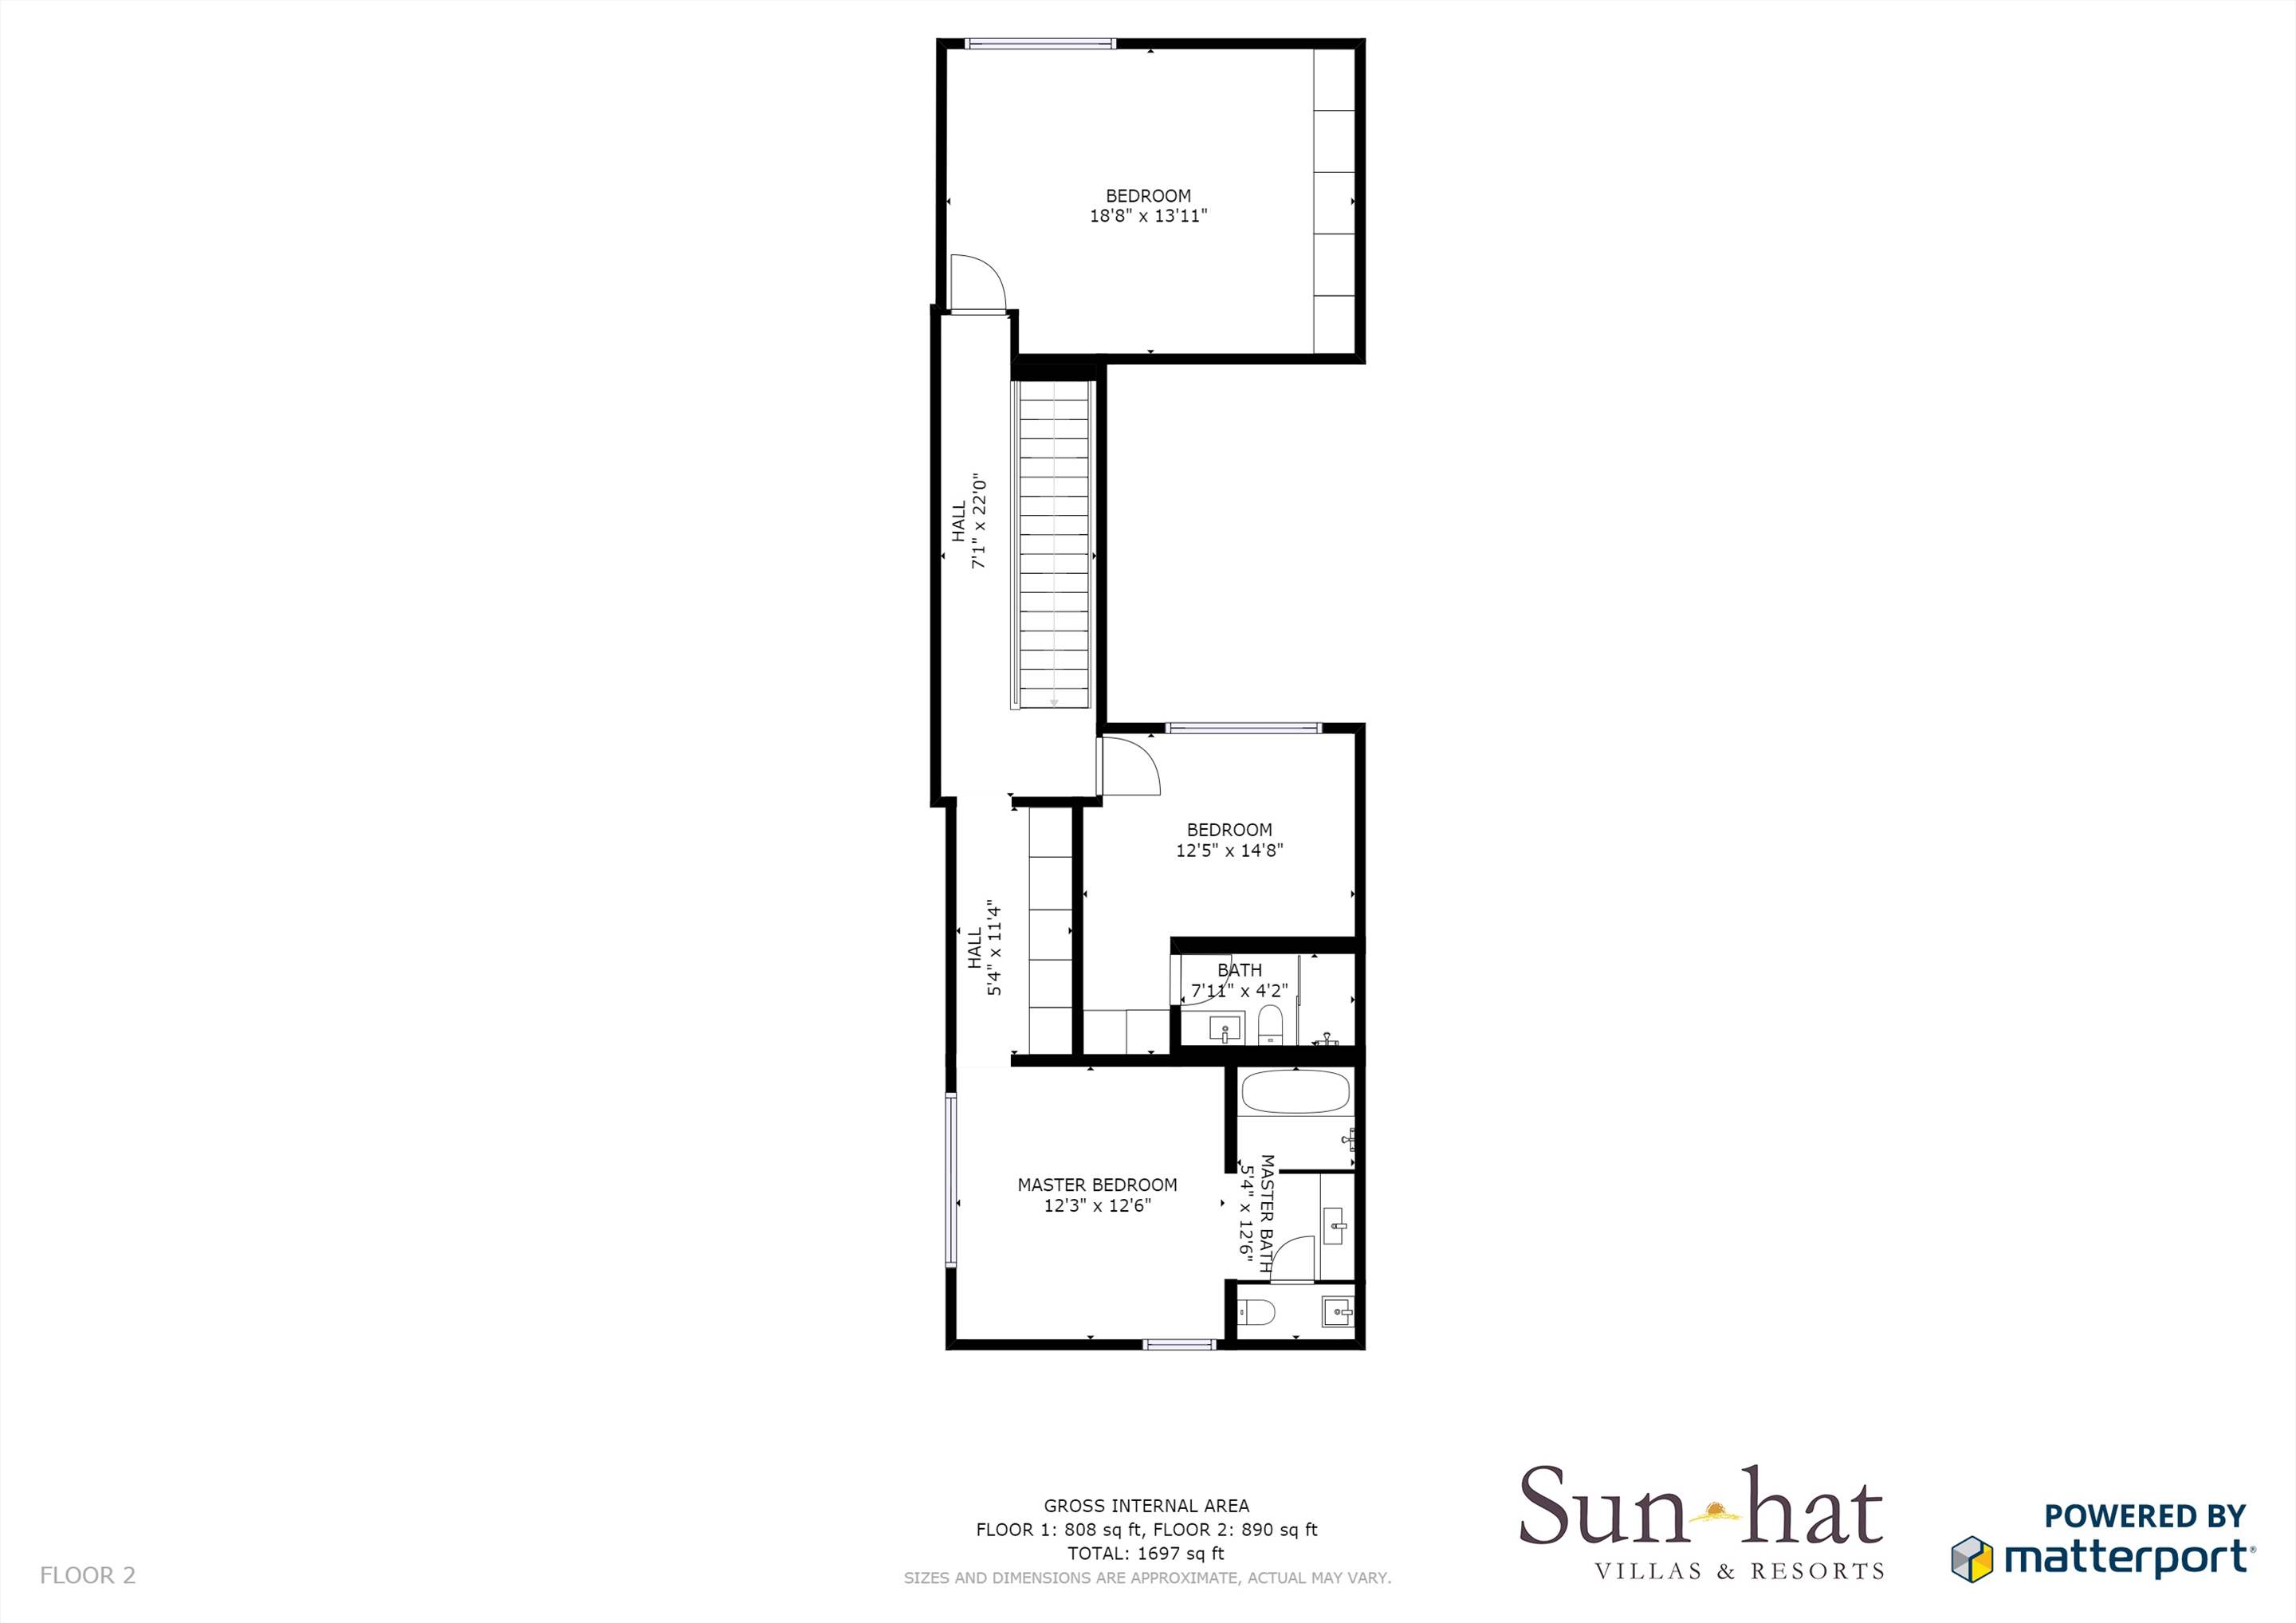 Pine Cliffs Terraces, 2 Bedroom, room only basis  Floorplan #2